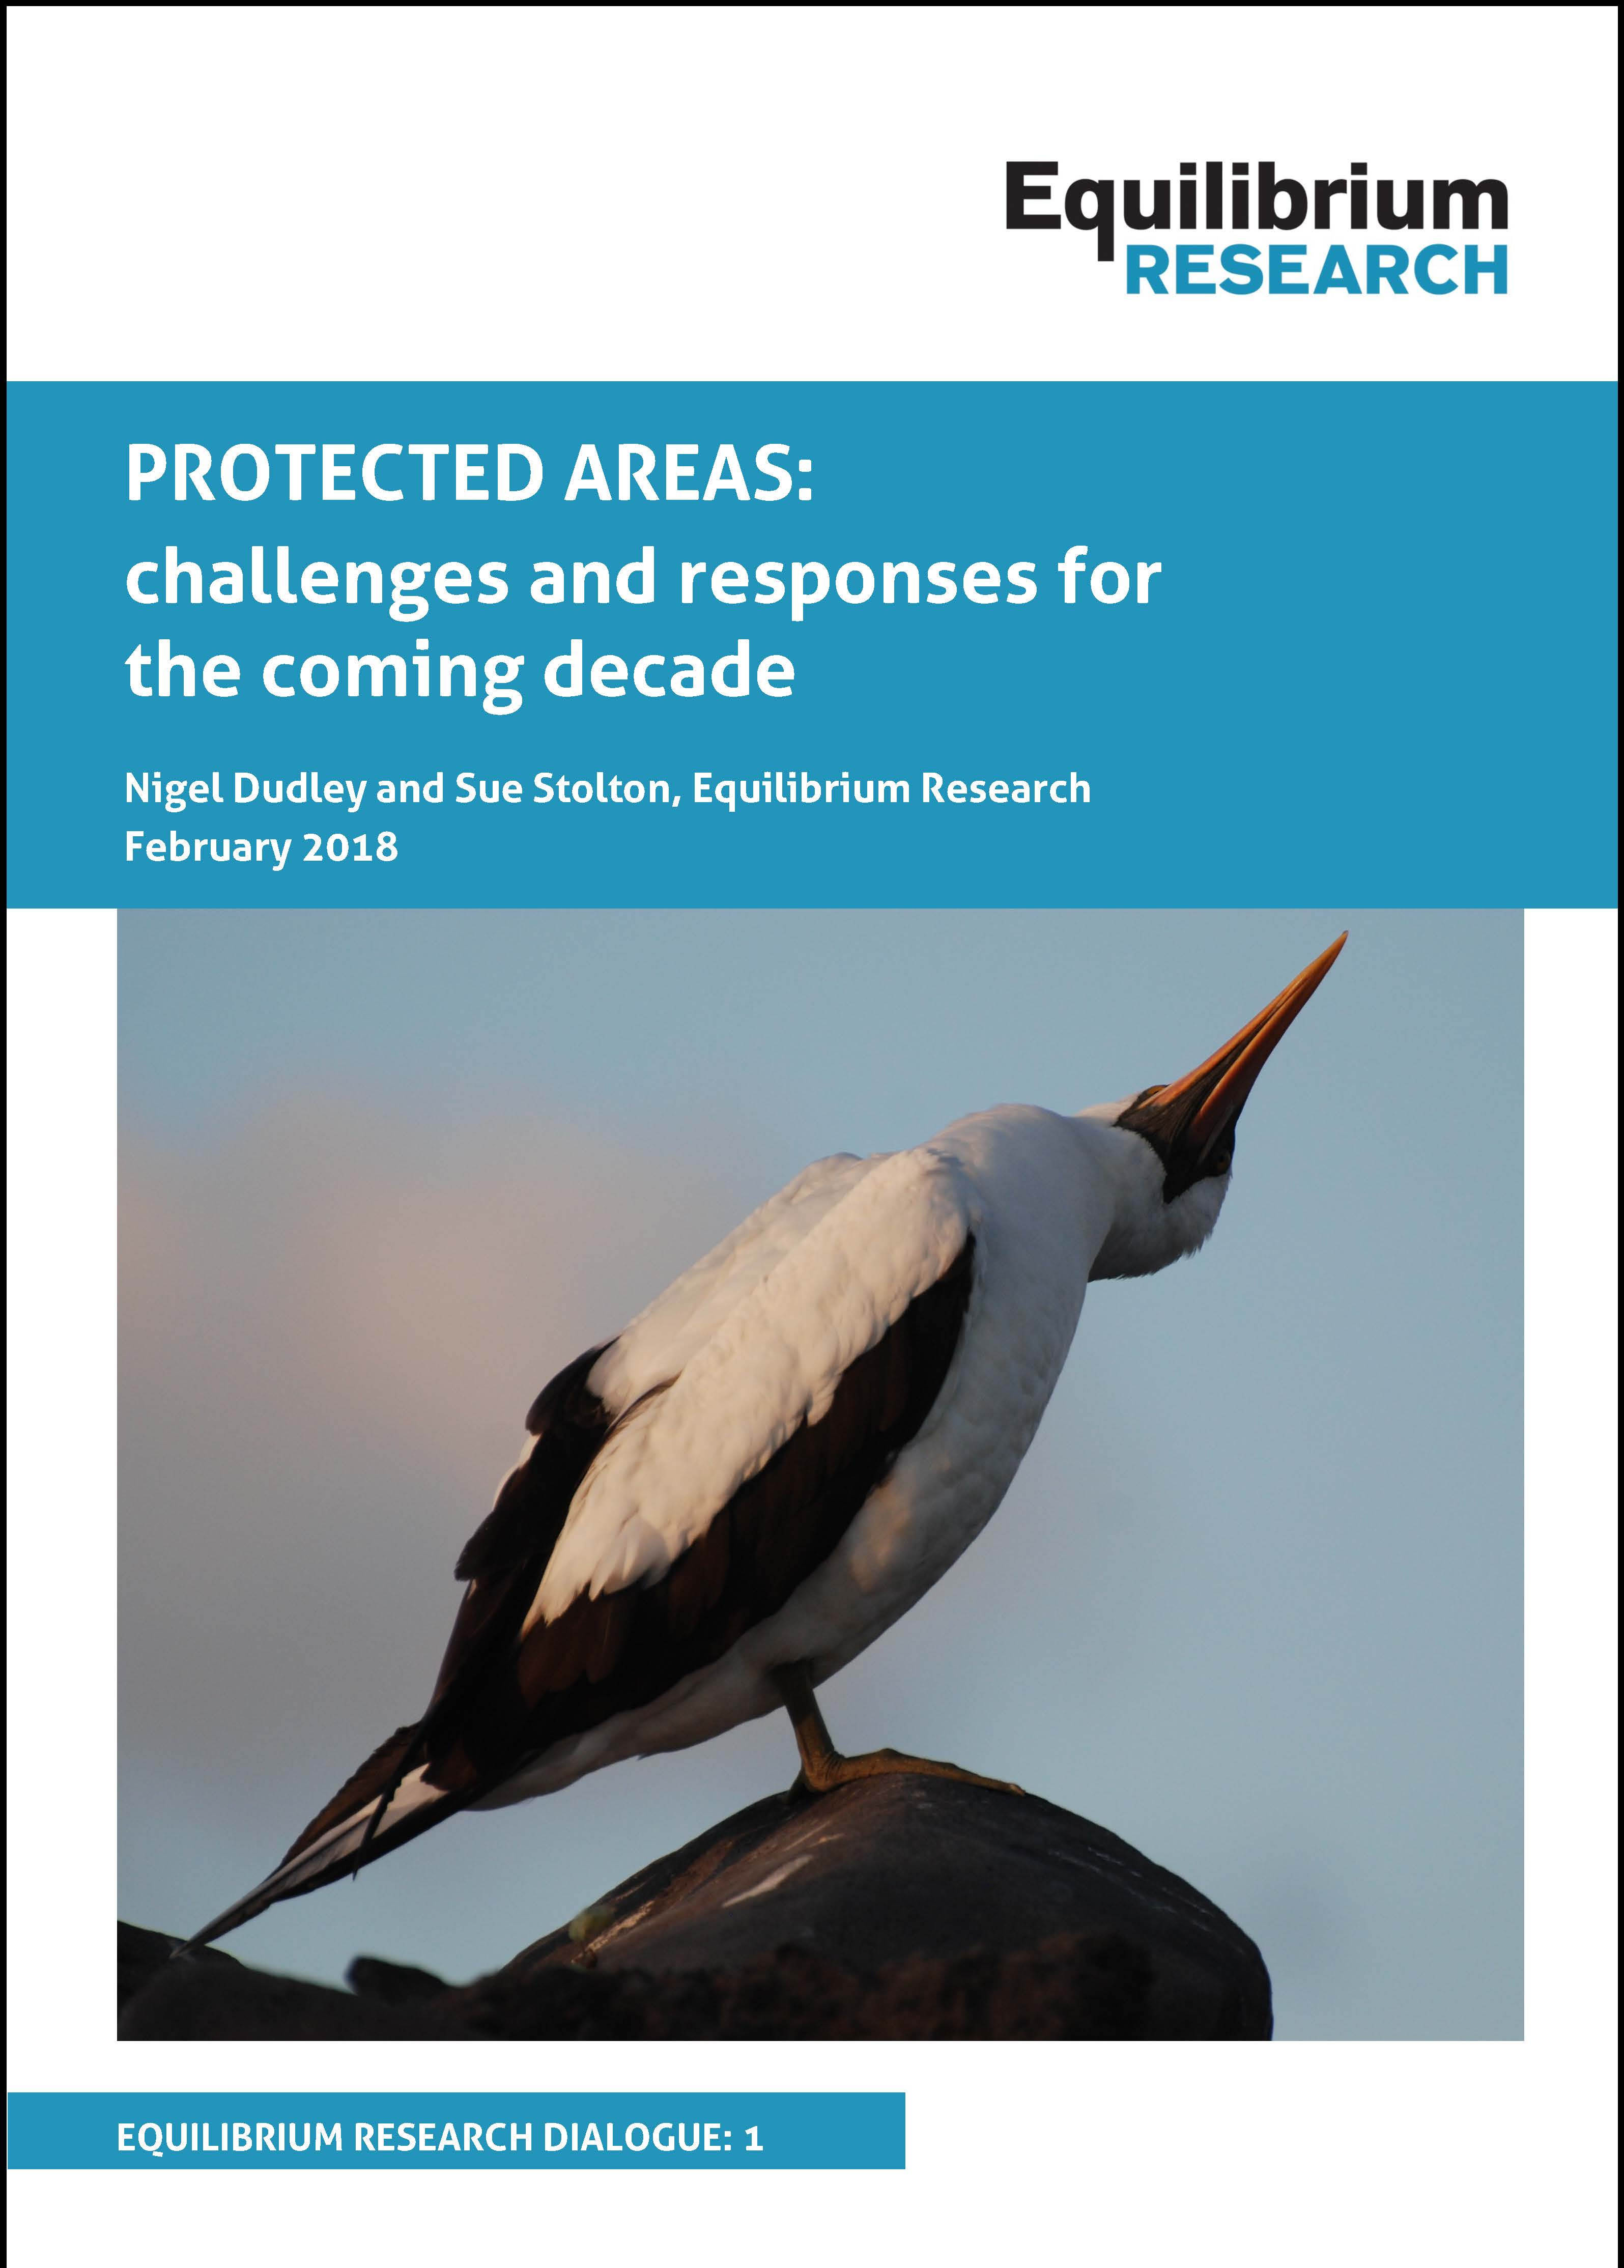 Protected areas: challenges and responses for the coming decade